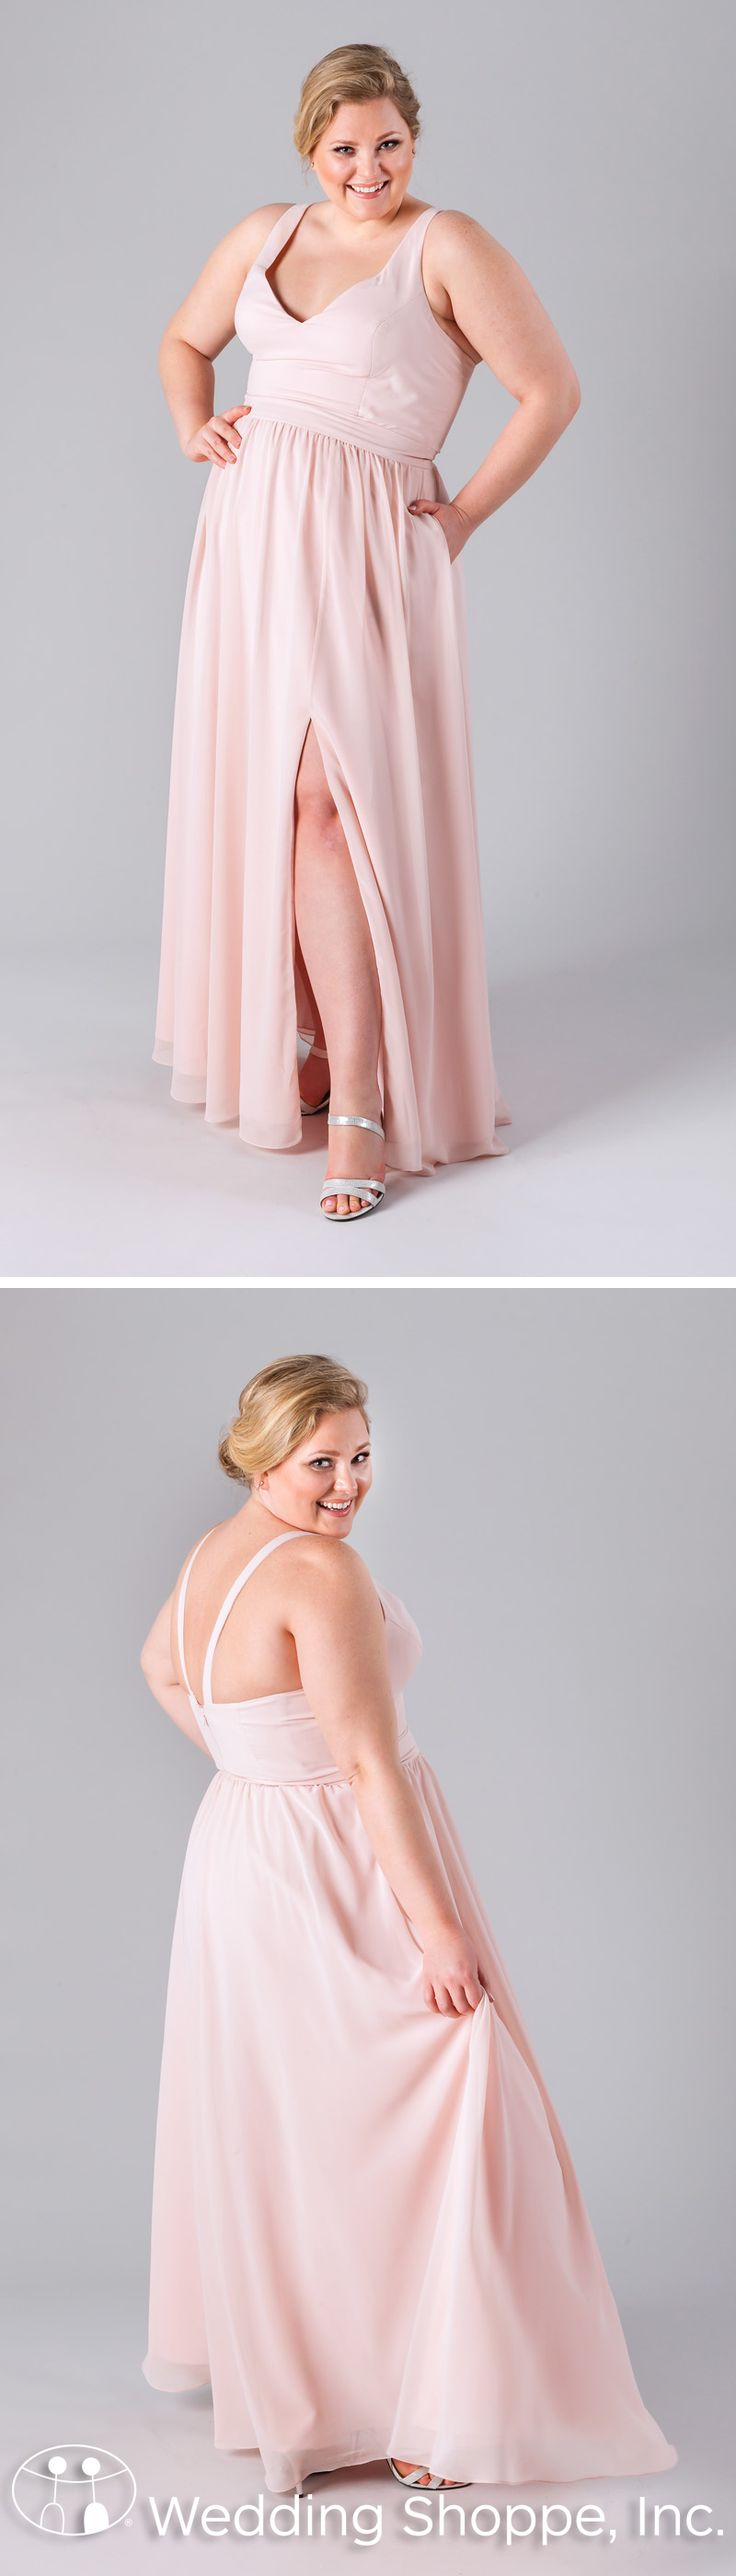 Plus size pink wedding dresses  A simple plus size bridesmaid dress with a Vneckline and Vback